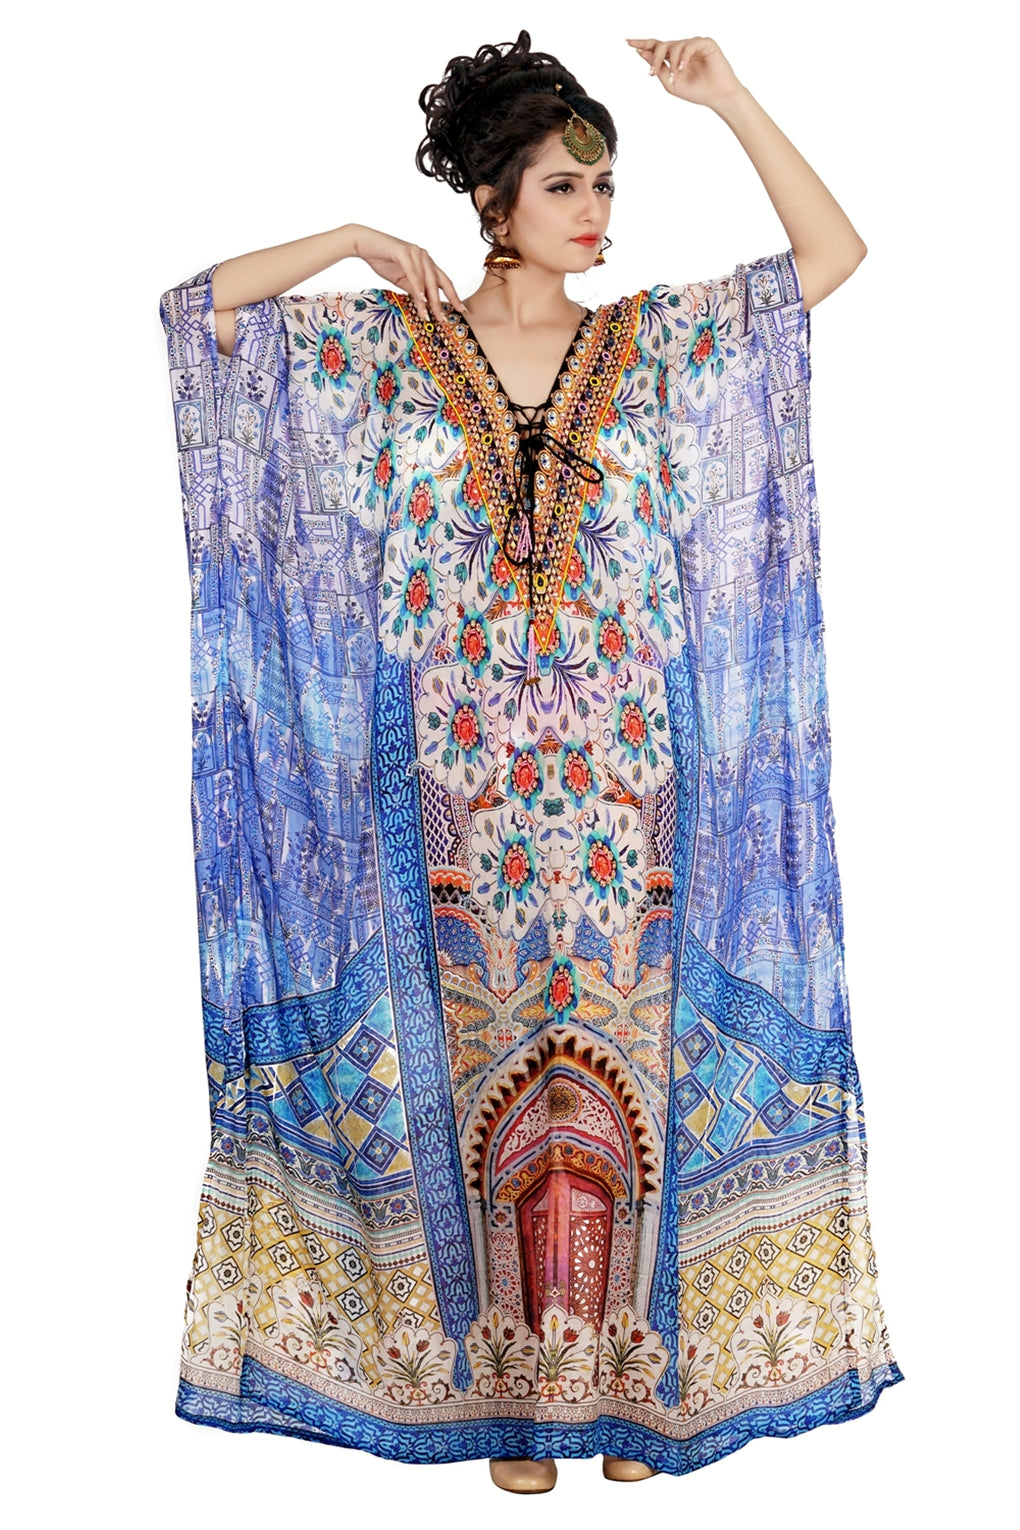 georgette kaftan dress